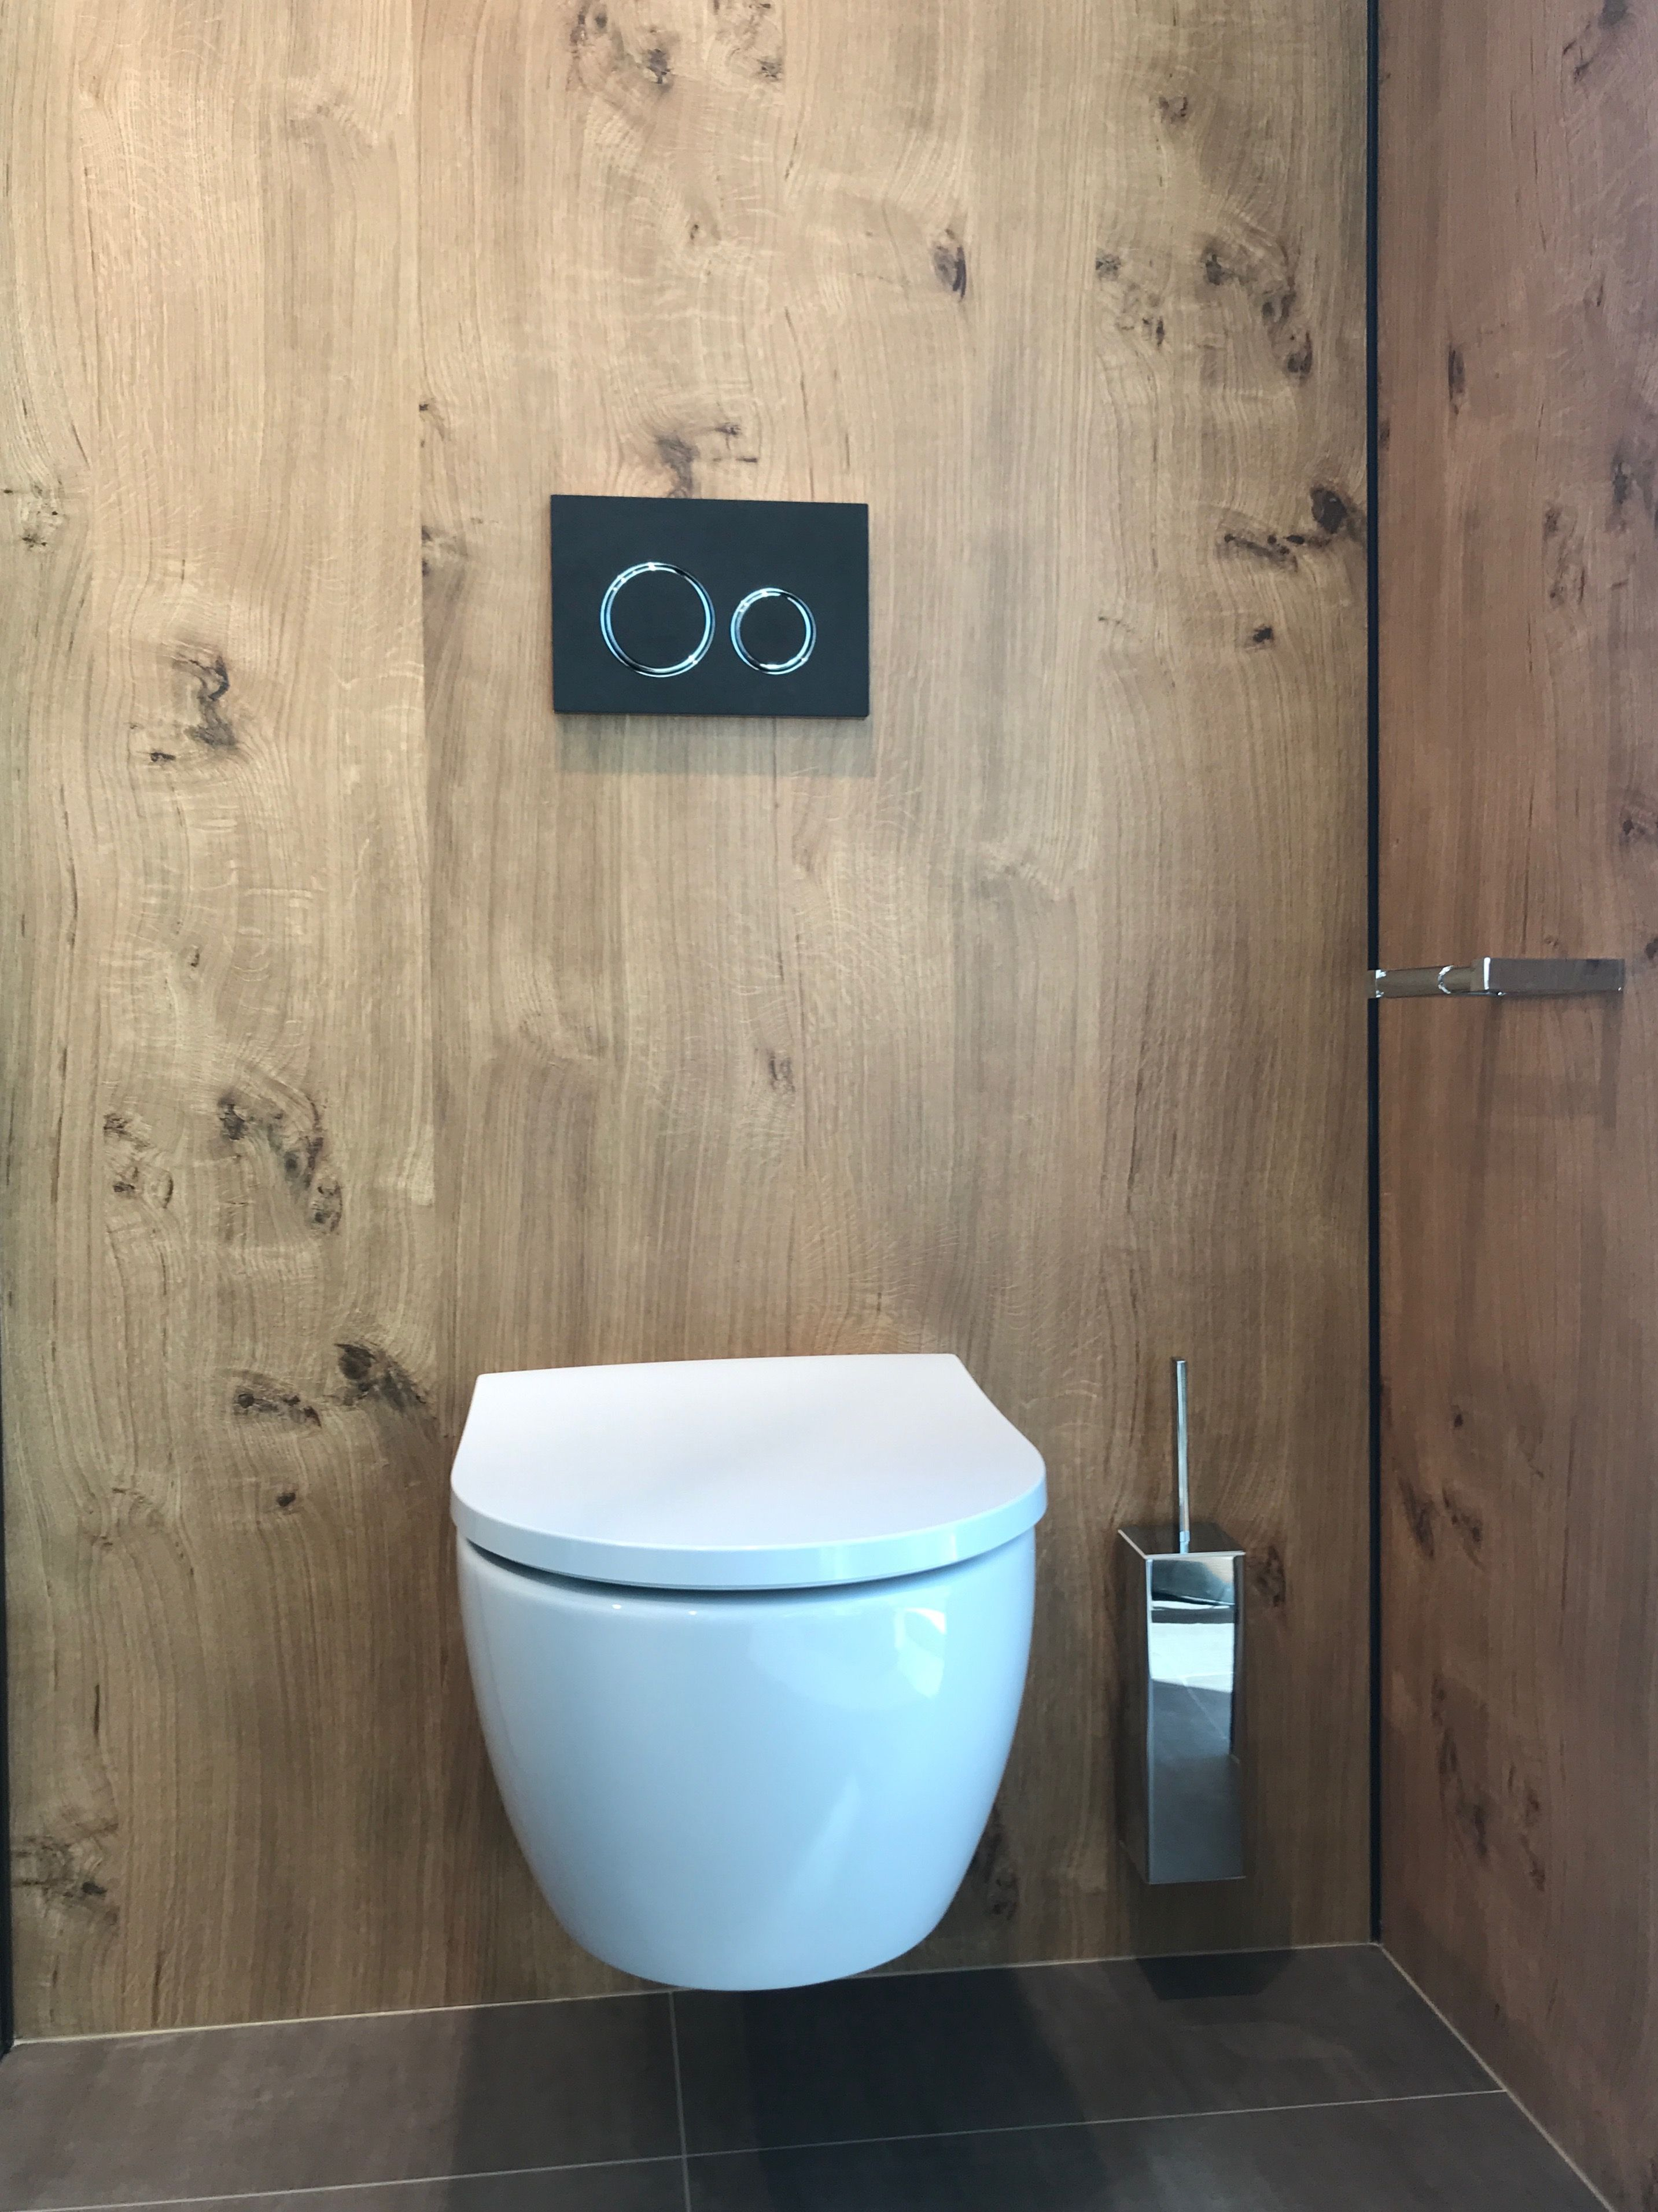 Simple Toilet In Front Of A Wooden Wall Toilette Toiletdesign Interior Decor Homestyle Living Tinyroom Interiorin Holzwand Wc Design Wc Im Erdgeschoss